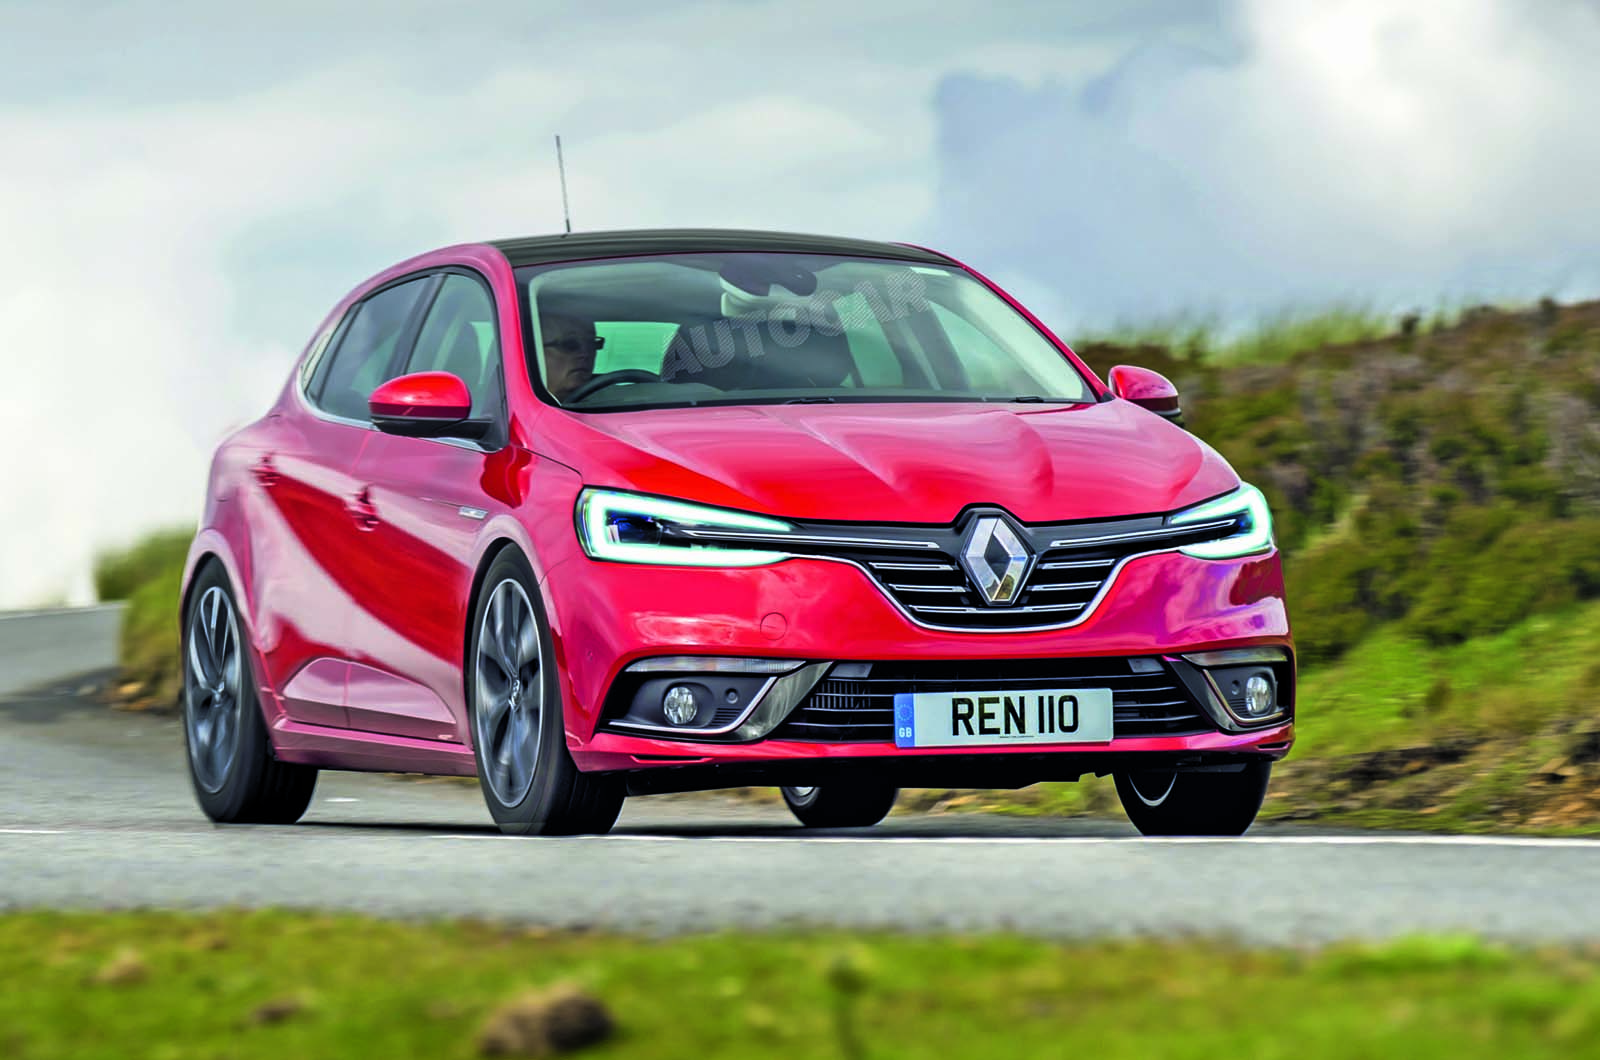 38 New Renault Clio 2019 Spy Exterior and Interior with Renault Clio 2019 Spy